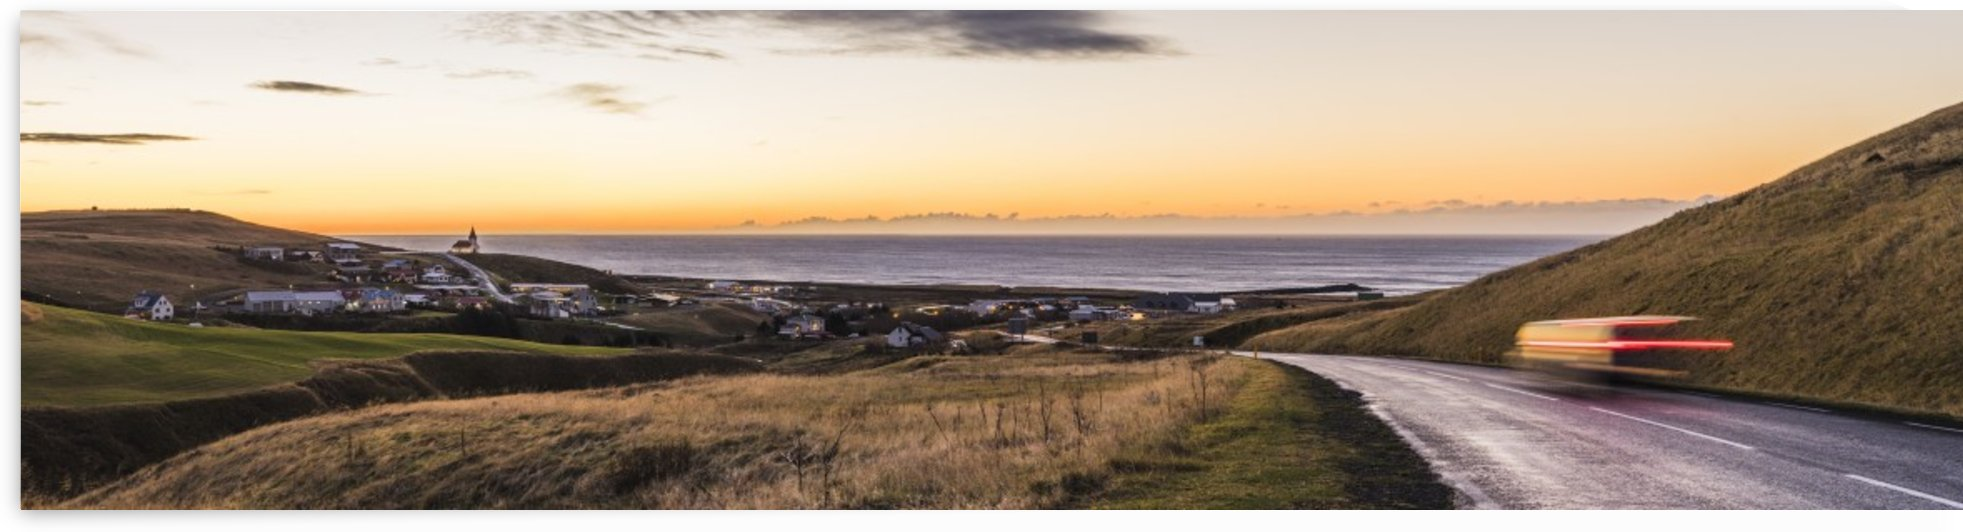 Town of Vik at sunset Iceland by Atelier Knox